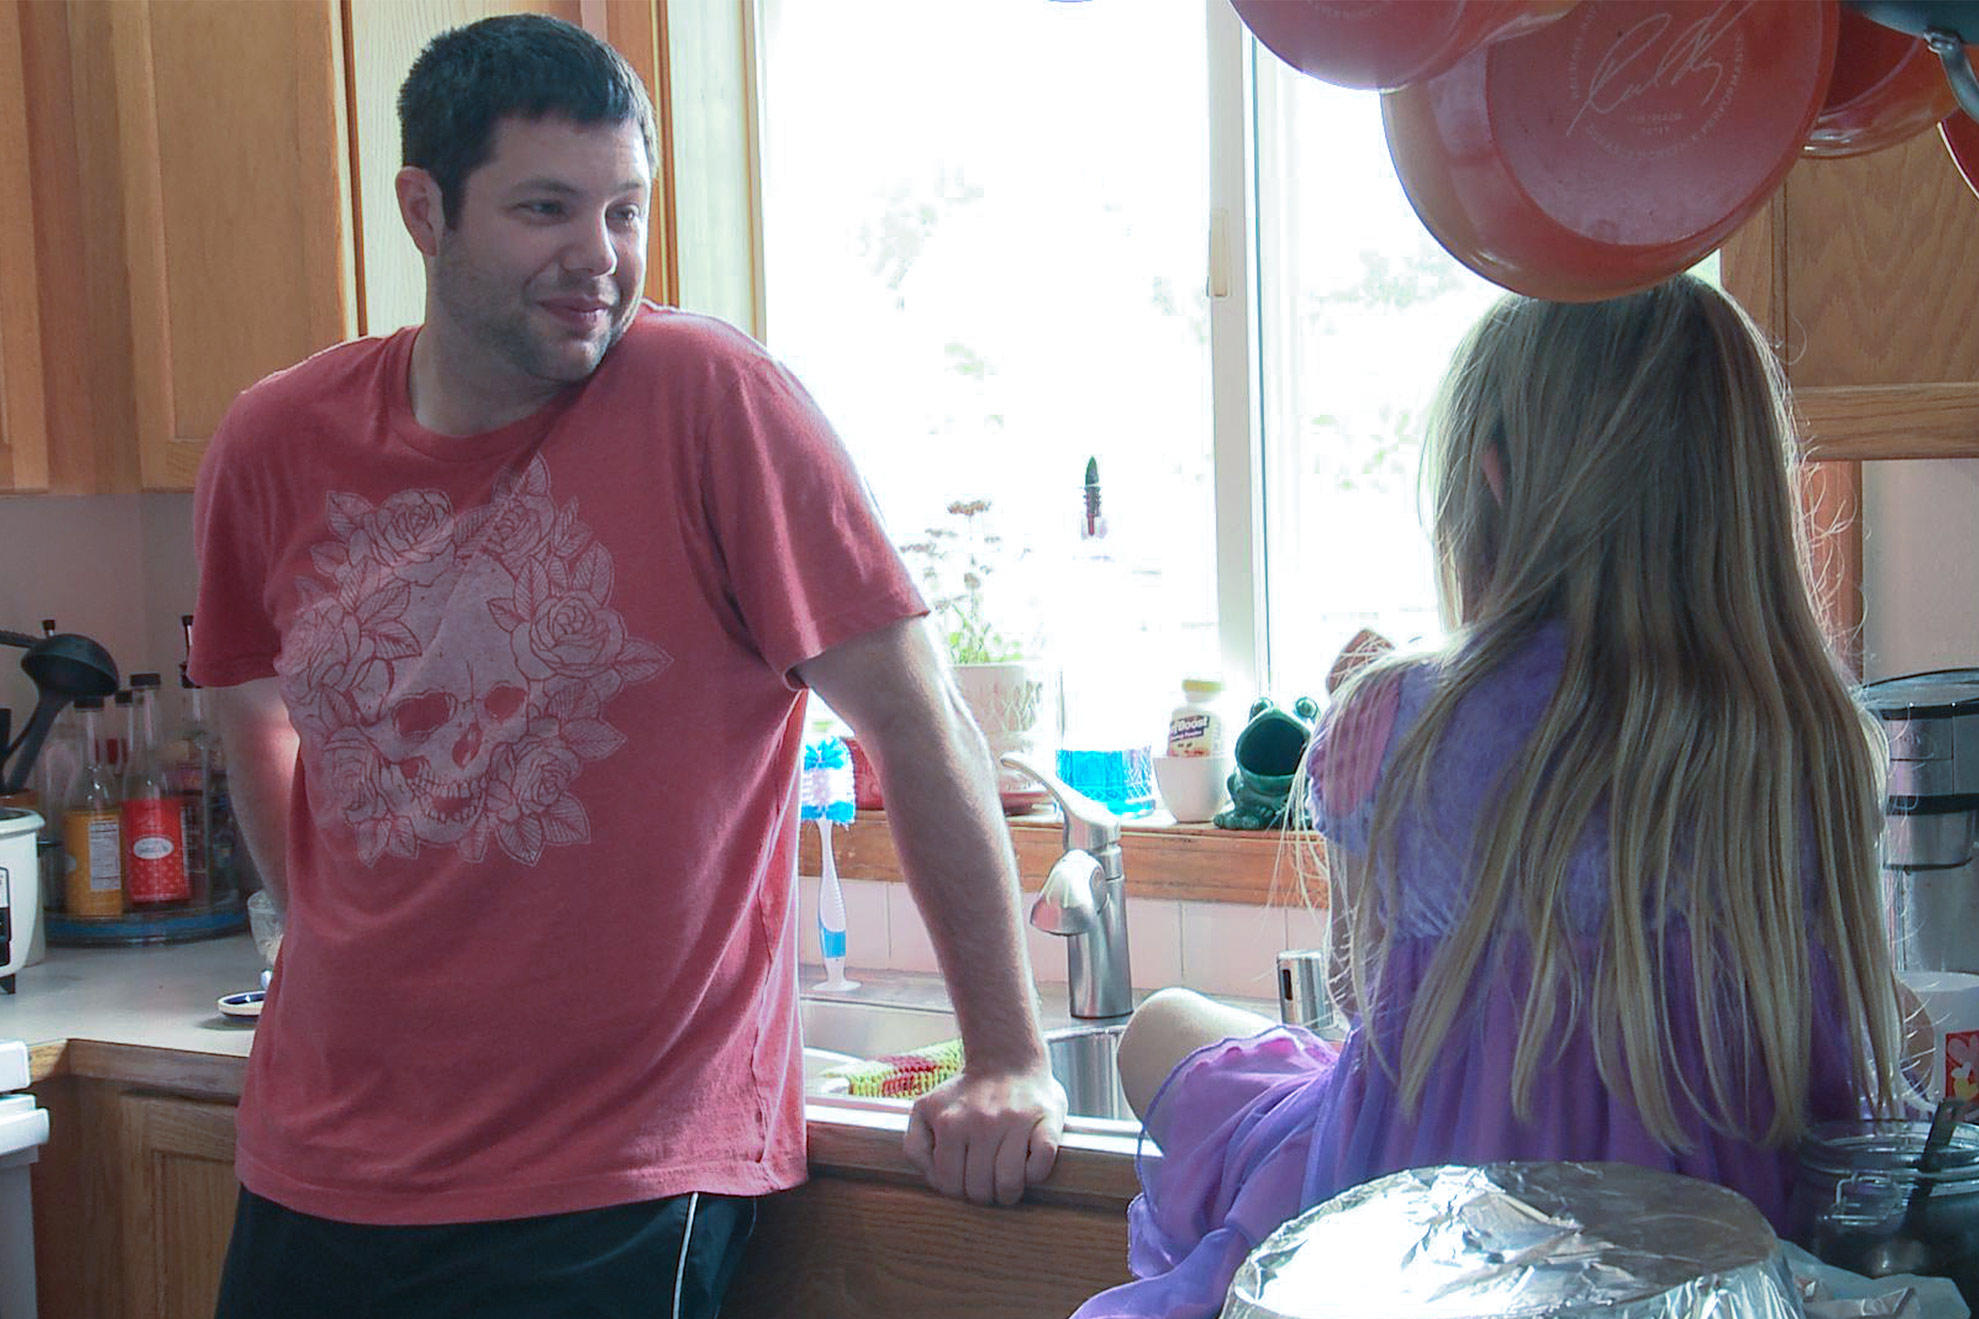 Brett spends time with his daughter cassidy who s visiting for the